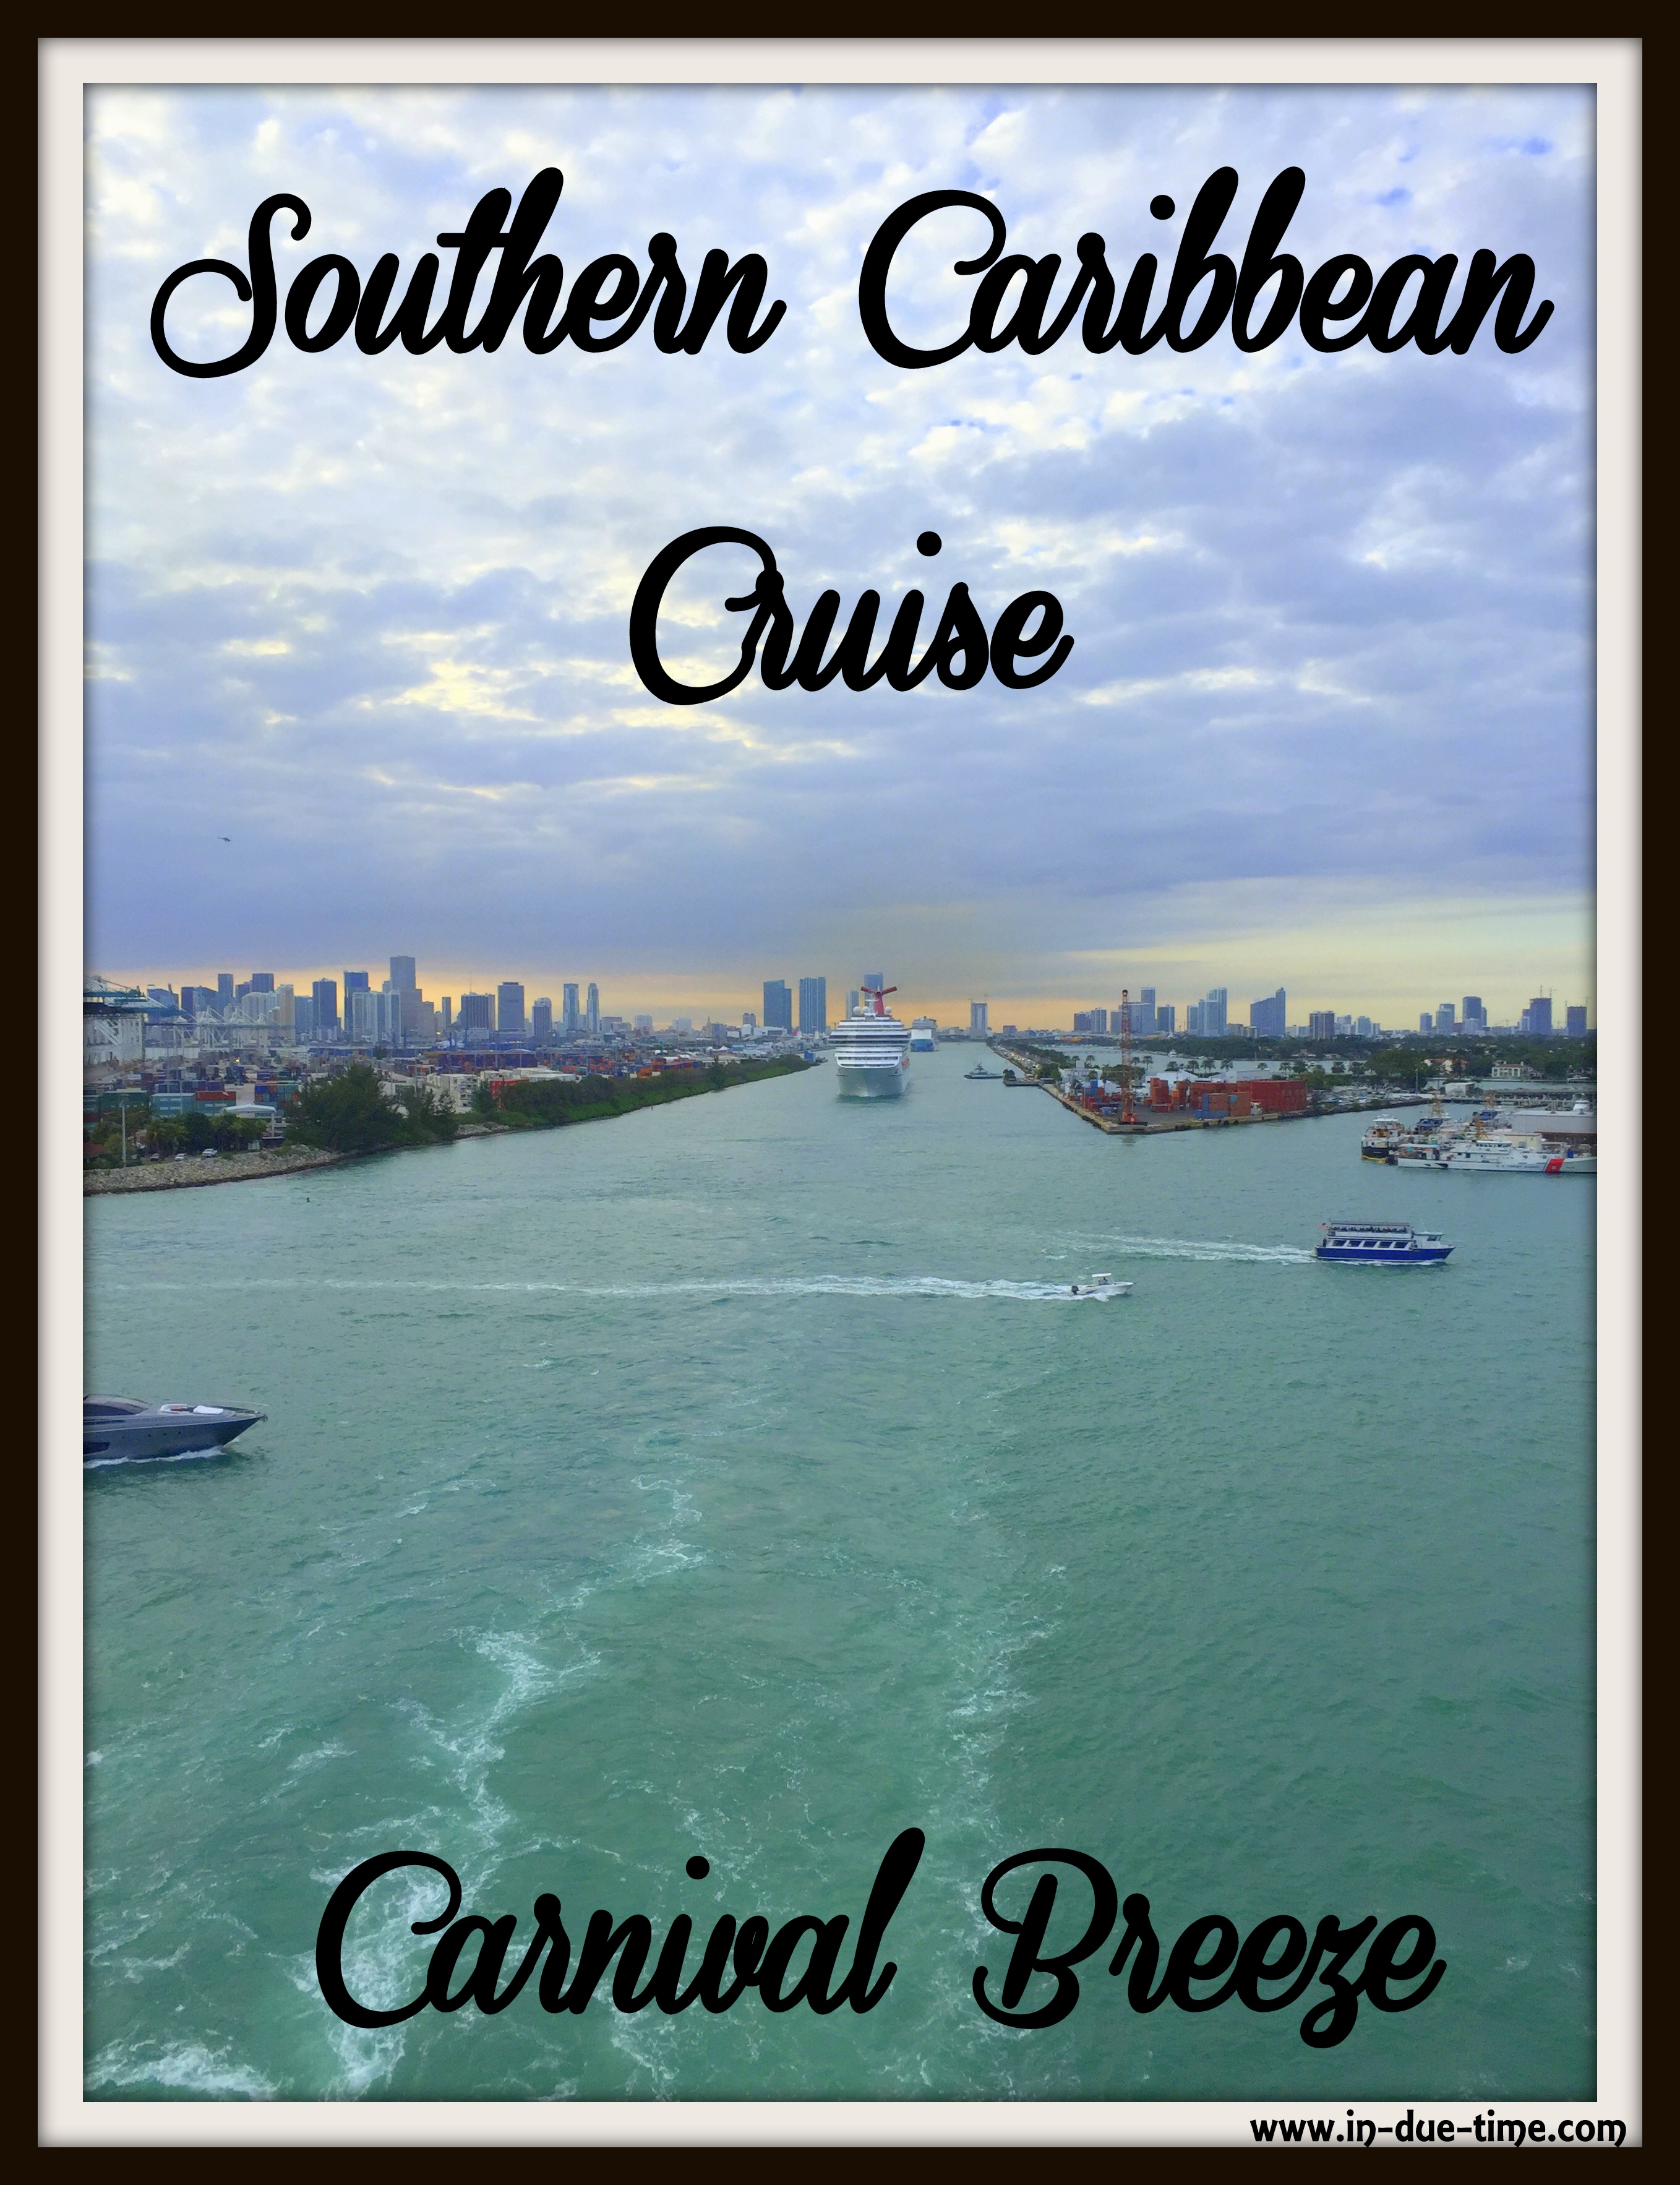 Southern Caribbean Cruise  Part 1  In Due Time. Low Cost Replacement Windows Type Of Cloud. Carribean Yacht Charters Moving Storage Units. Drain Cleaning In Denver Storage In Stockton. Heartland Payroll Systems Act Testing Centers. Email Marketing Service College For Animation. Deferred Variable Annuity Calculator. New Home Construction Dayton Ohio. Nevada Rehabilitation Centers